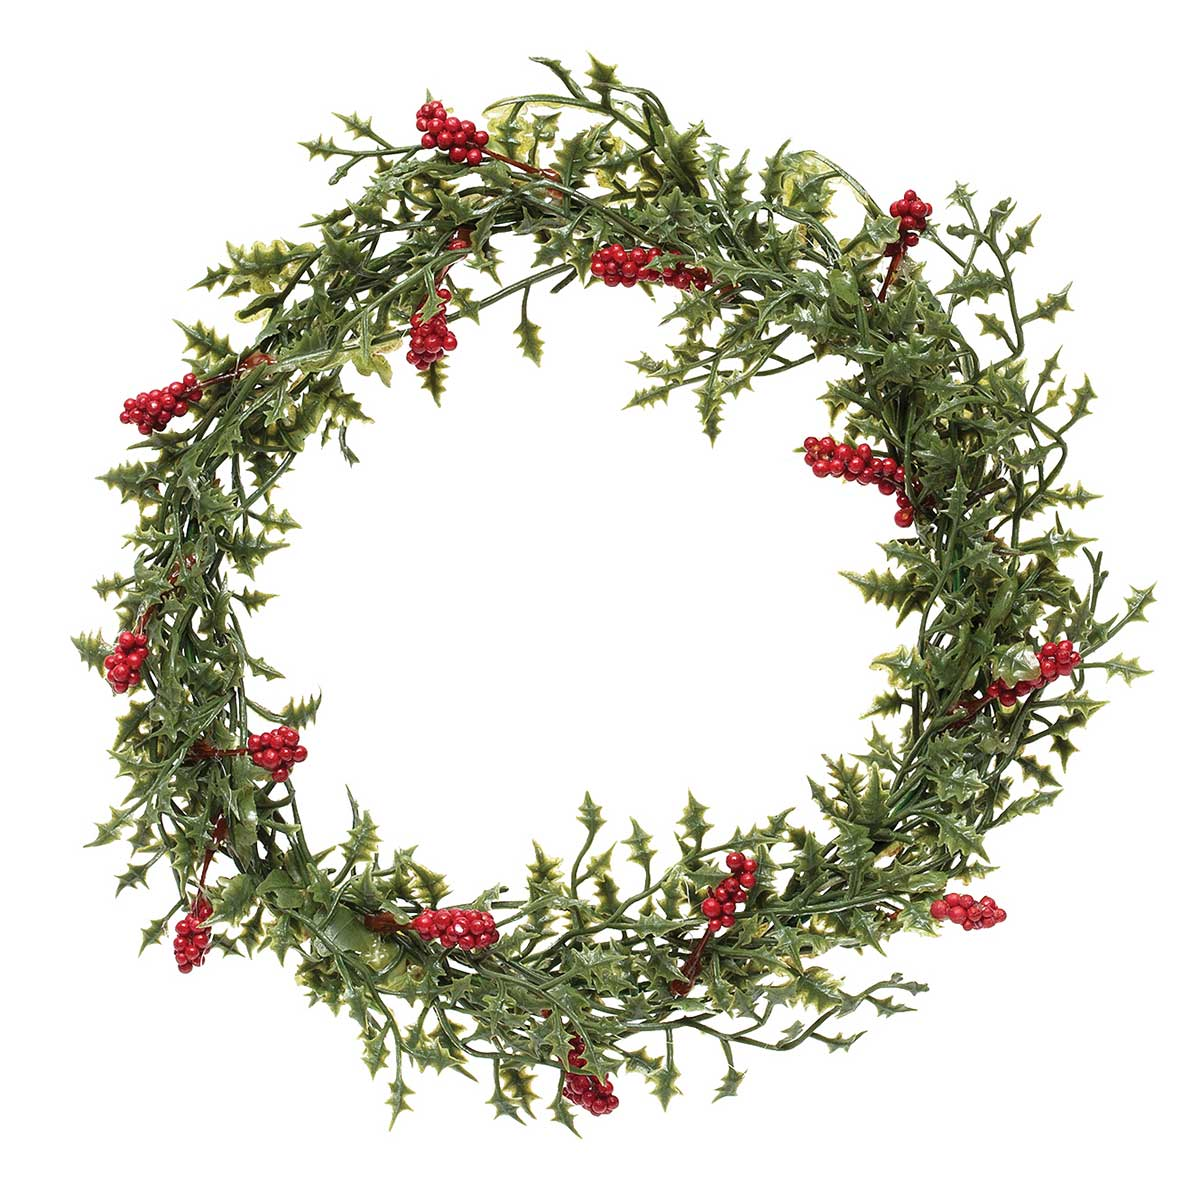 NATURAL HOLLY WREATH